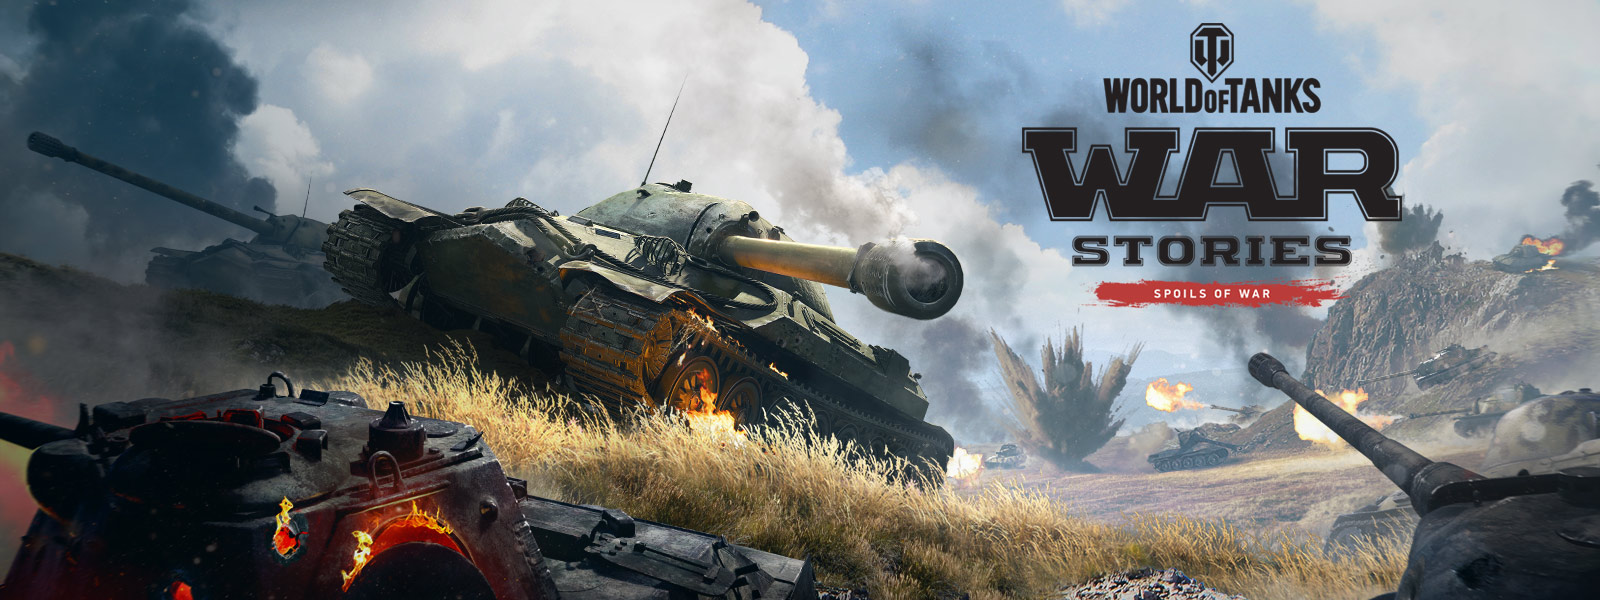 World of Tanks War Stories Spoils of War, two tanks go up a hill with multiple tanks firing in the background